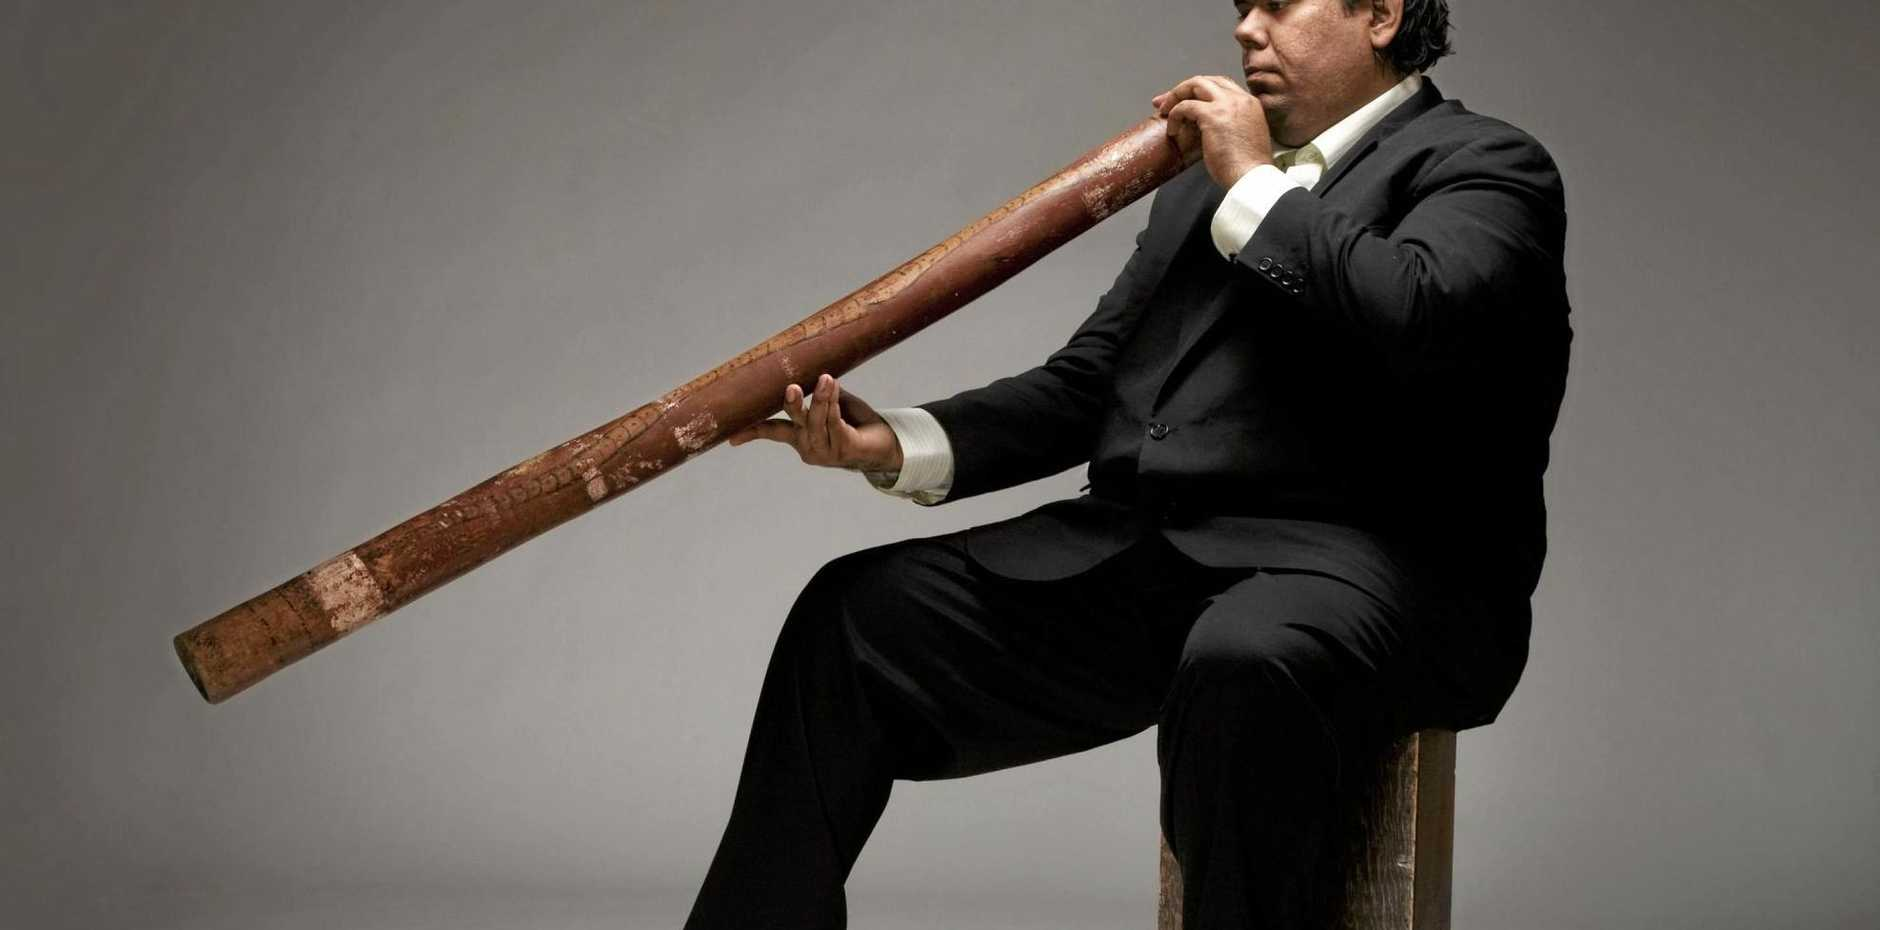 WORLD-FAMOUS: Didgeridoo player and winner of the 2012 ARIA for best classical album Kulkadunga, William Barton, is part of the line up at the Bangalow Music Festival 2017.